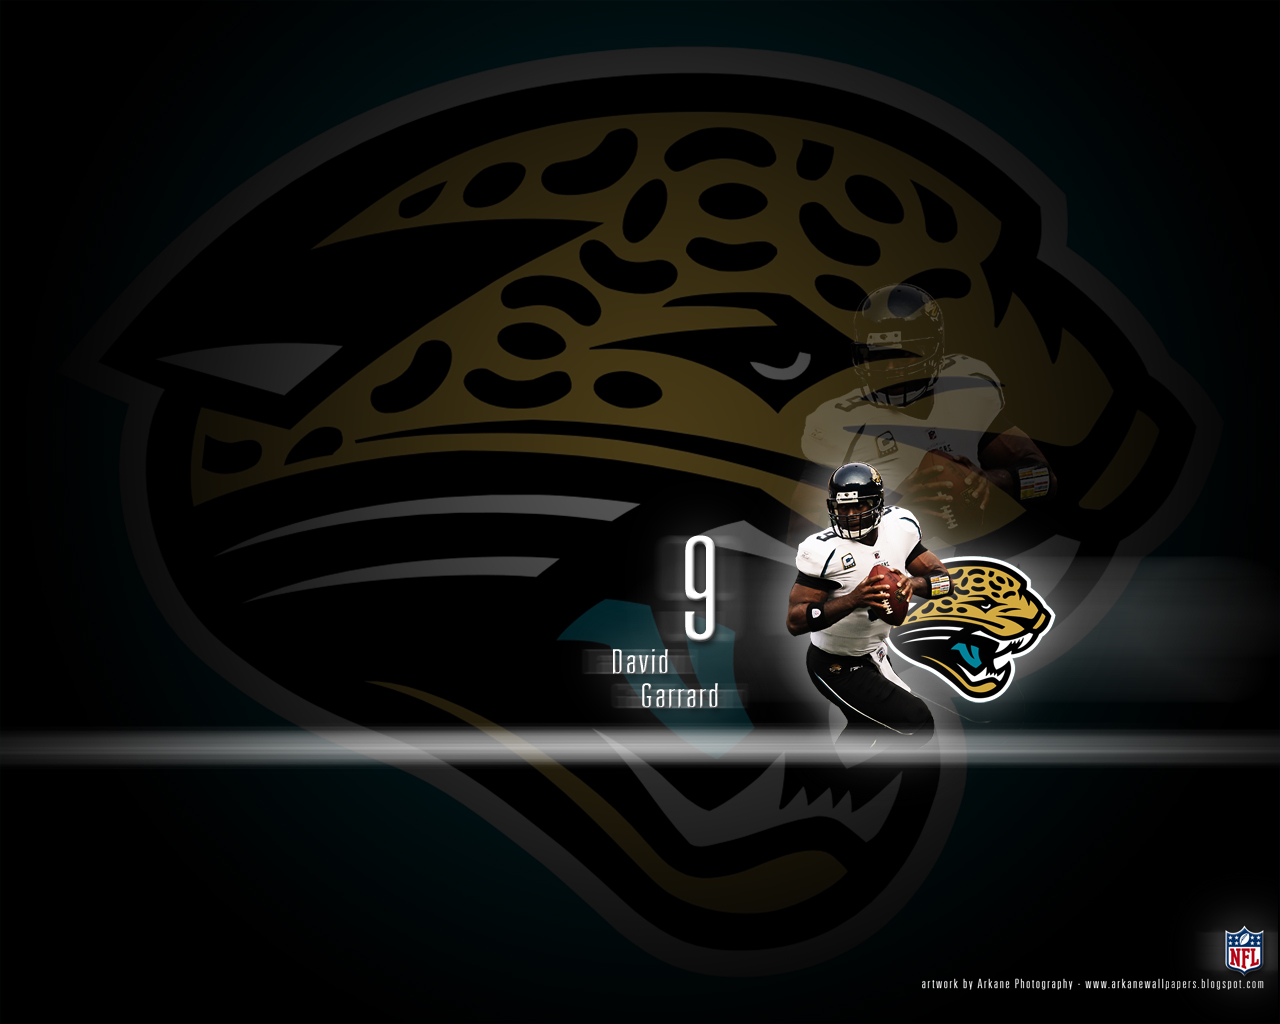 Jacksonville Jaguars Wallpapers And   Sexy Wallpapers   Rainpow 1280x1024